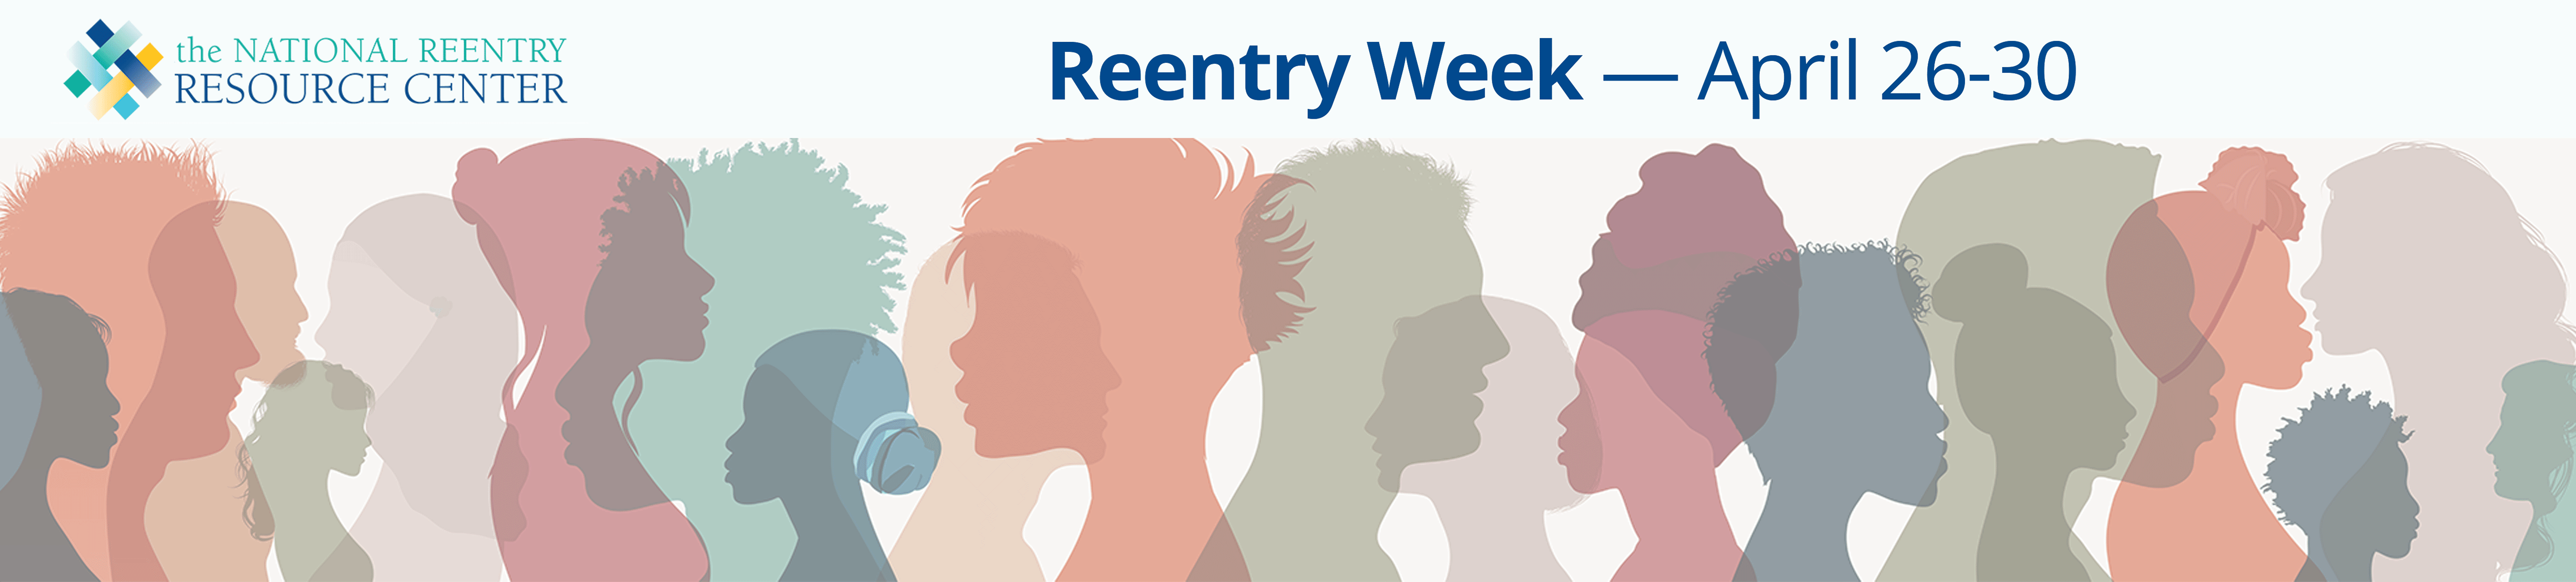 Reentry Week 2021 banner image